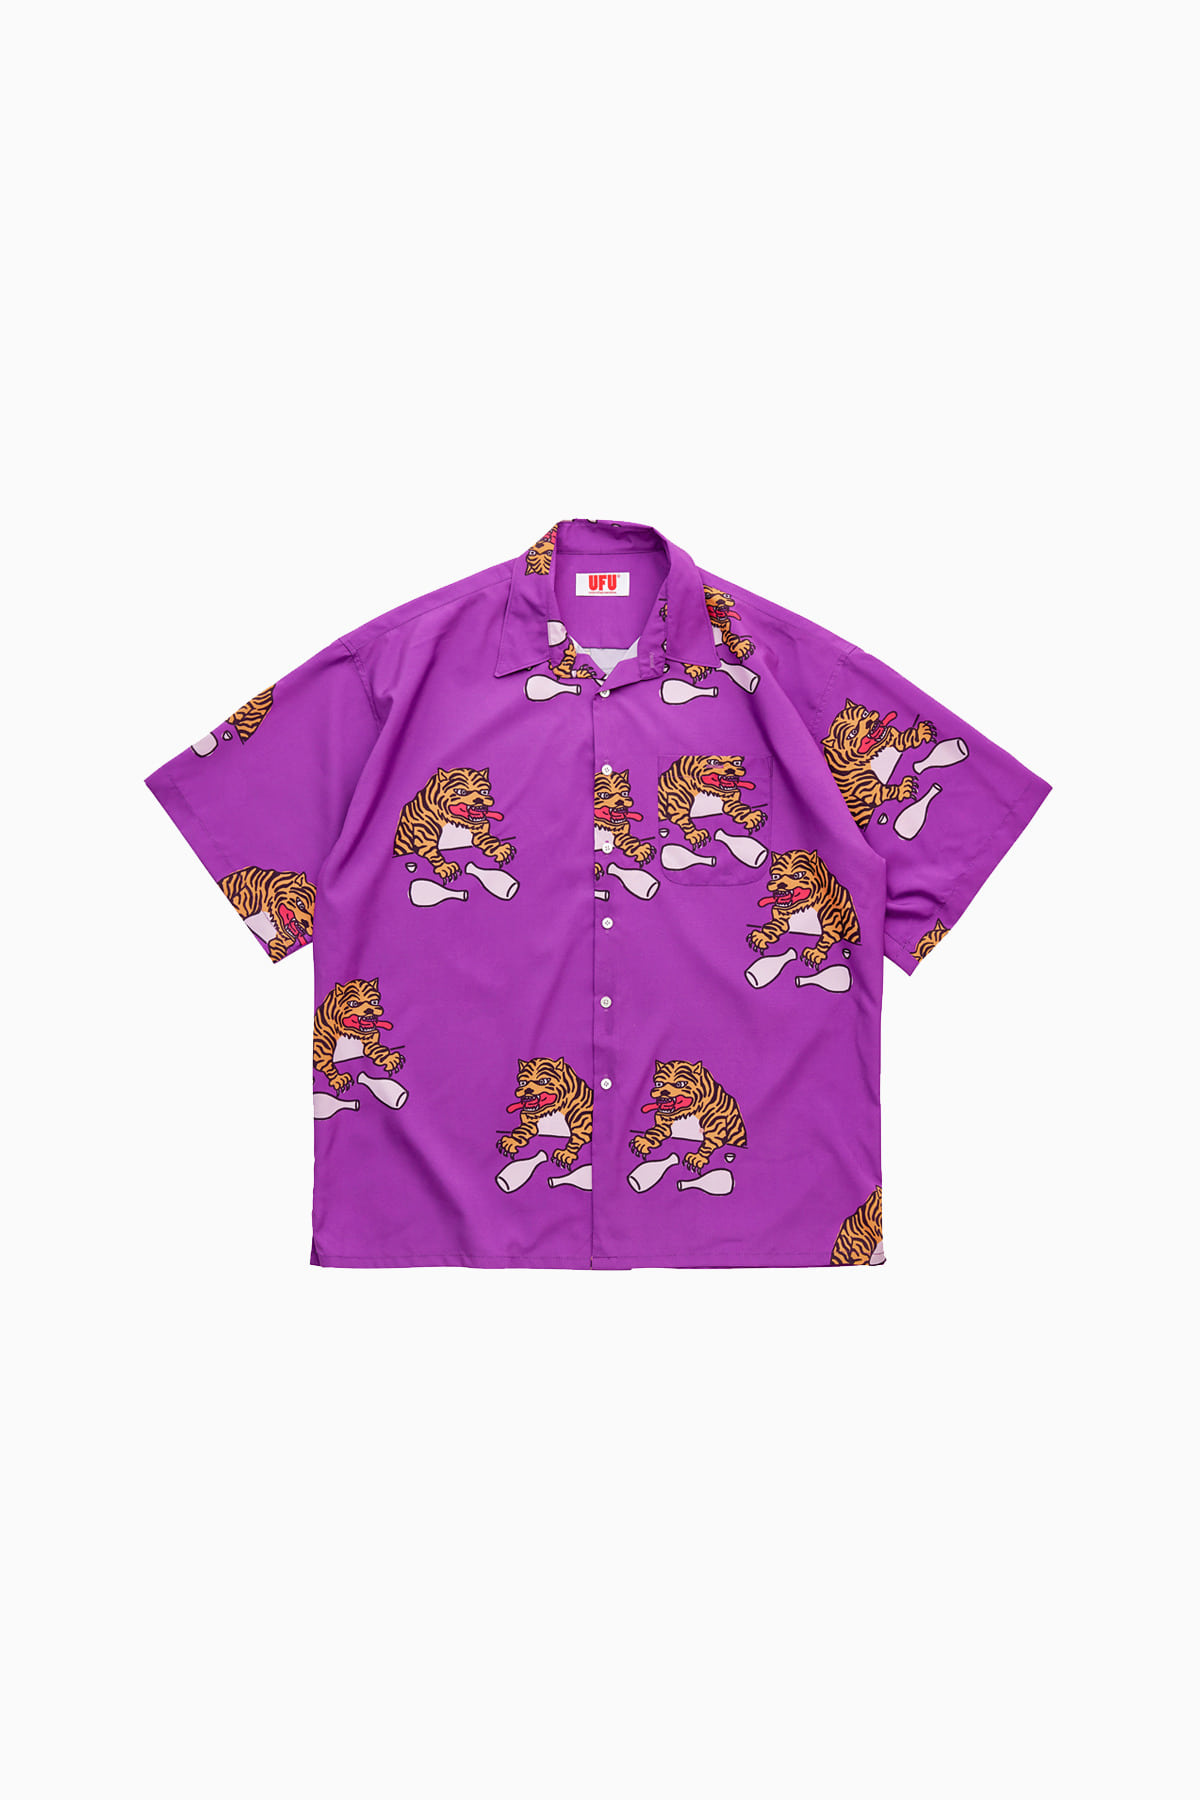 TIGER SHIRT_PURPLE